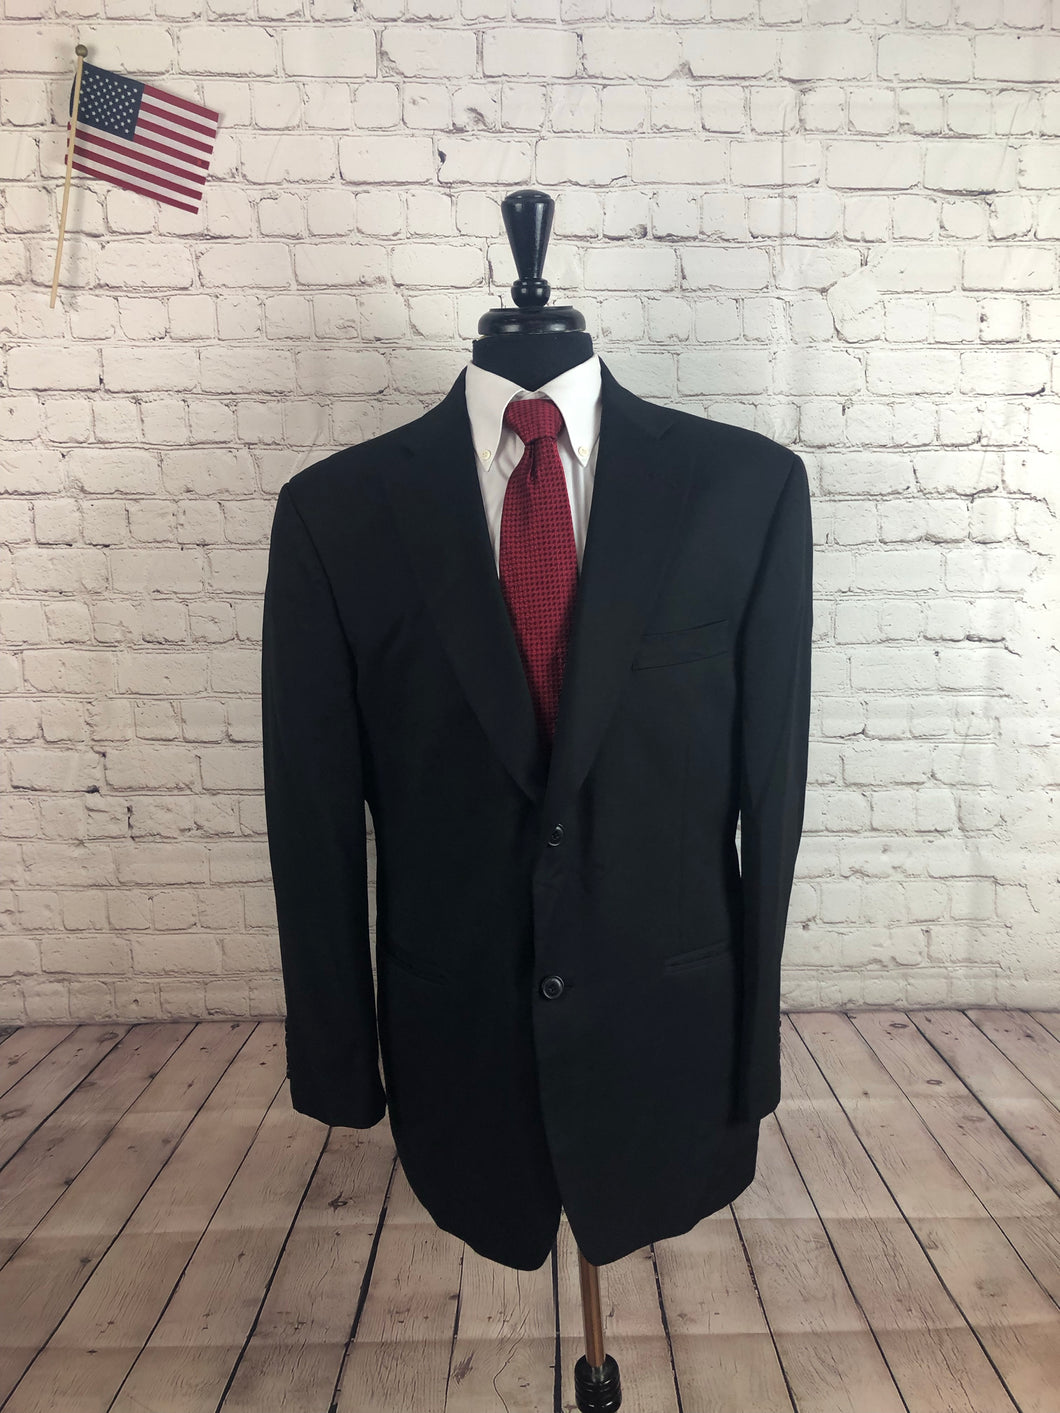 Stafford Men's Black 2 Button Blazer Sport Coat Suit Jacket Size 44R $195